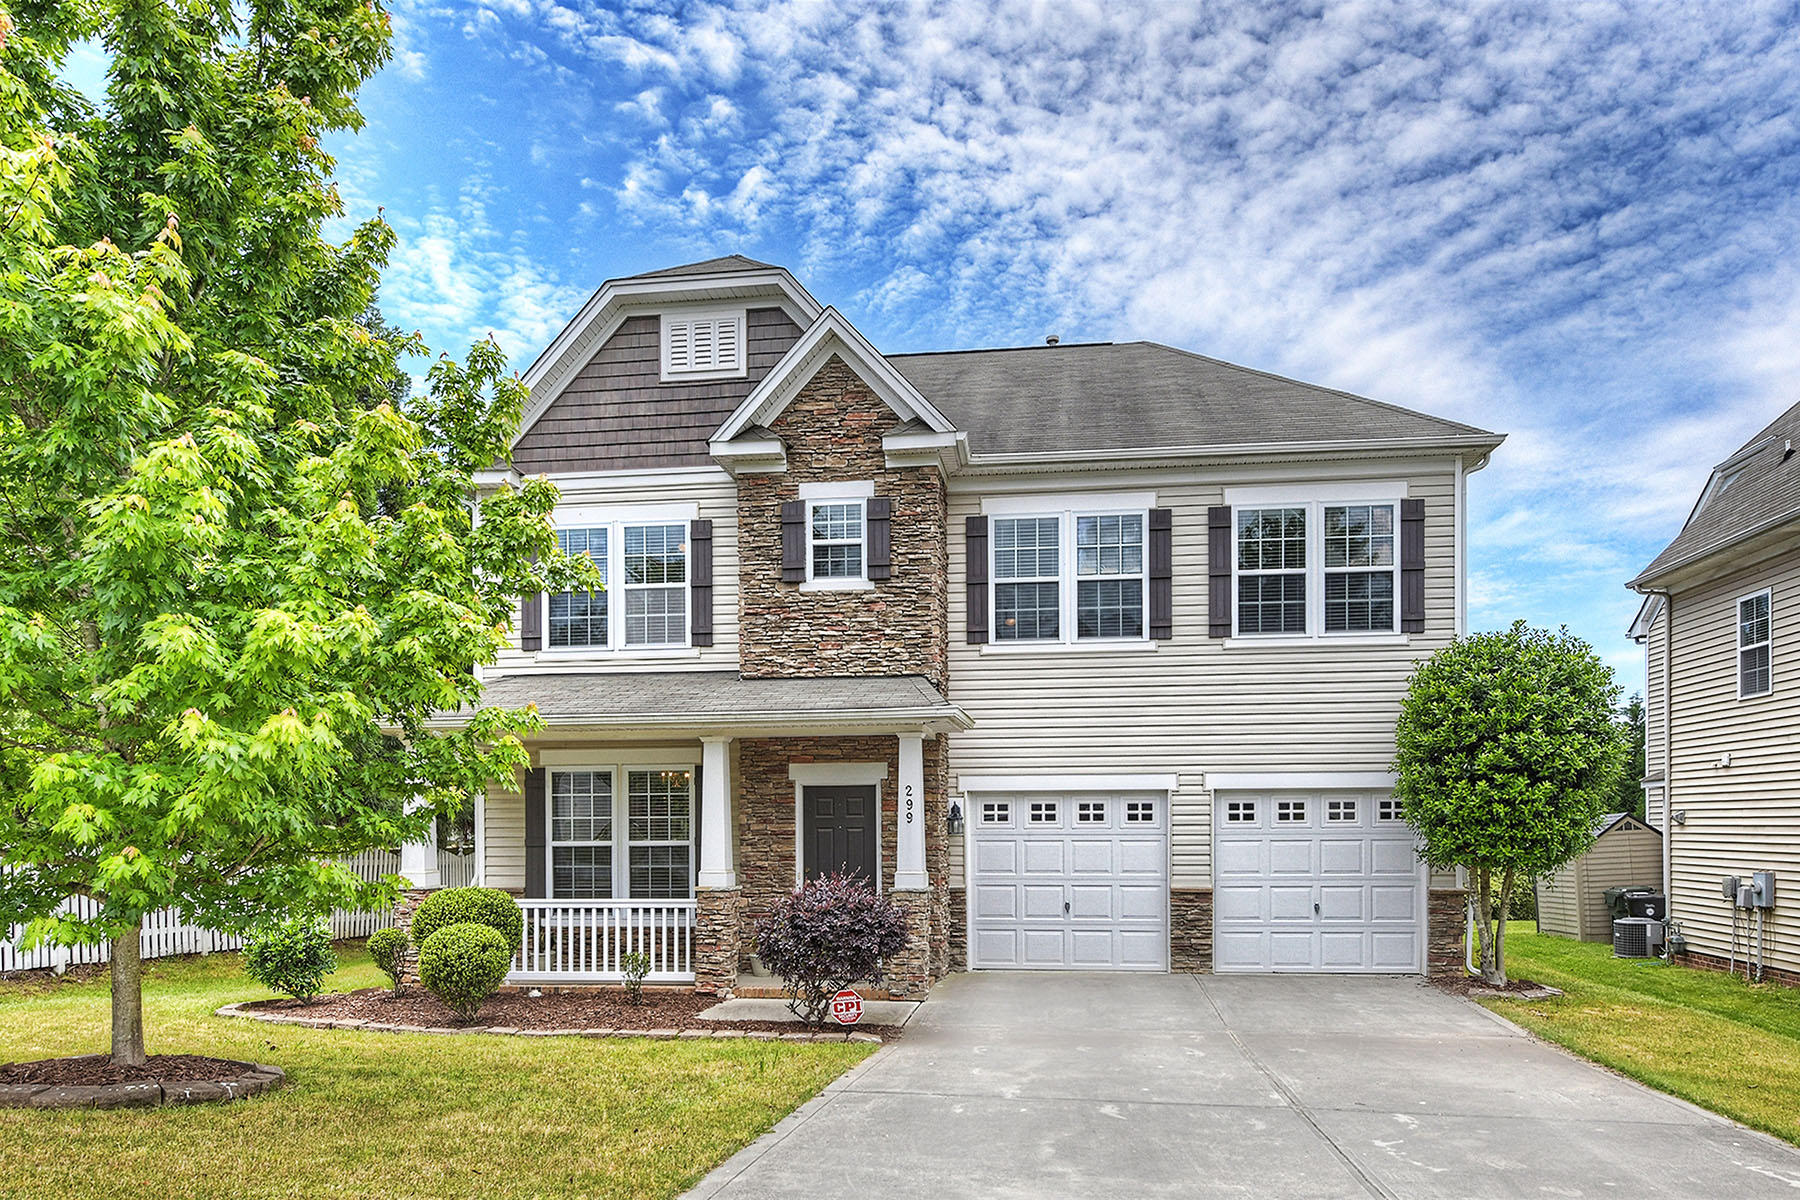 Single Family Homes for Sale at 299 Trillium Street Nw Concord, North Carolina 28027 United States